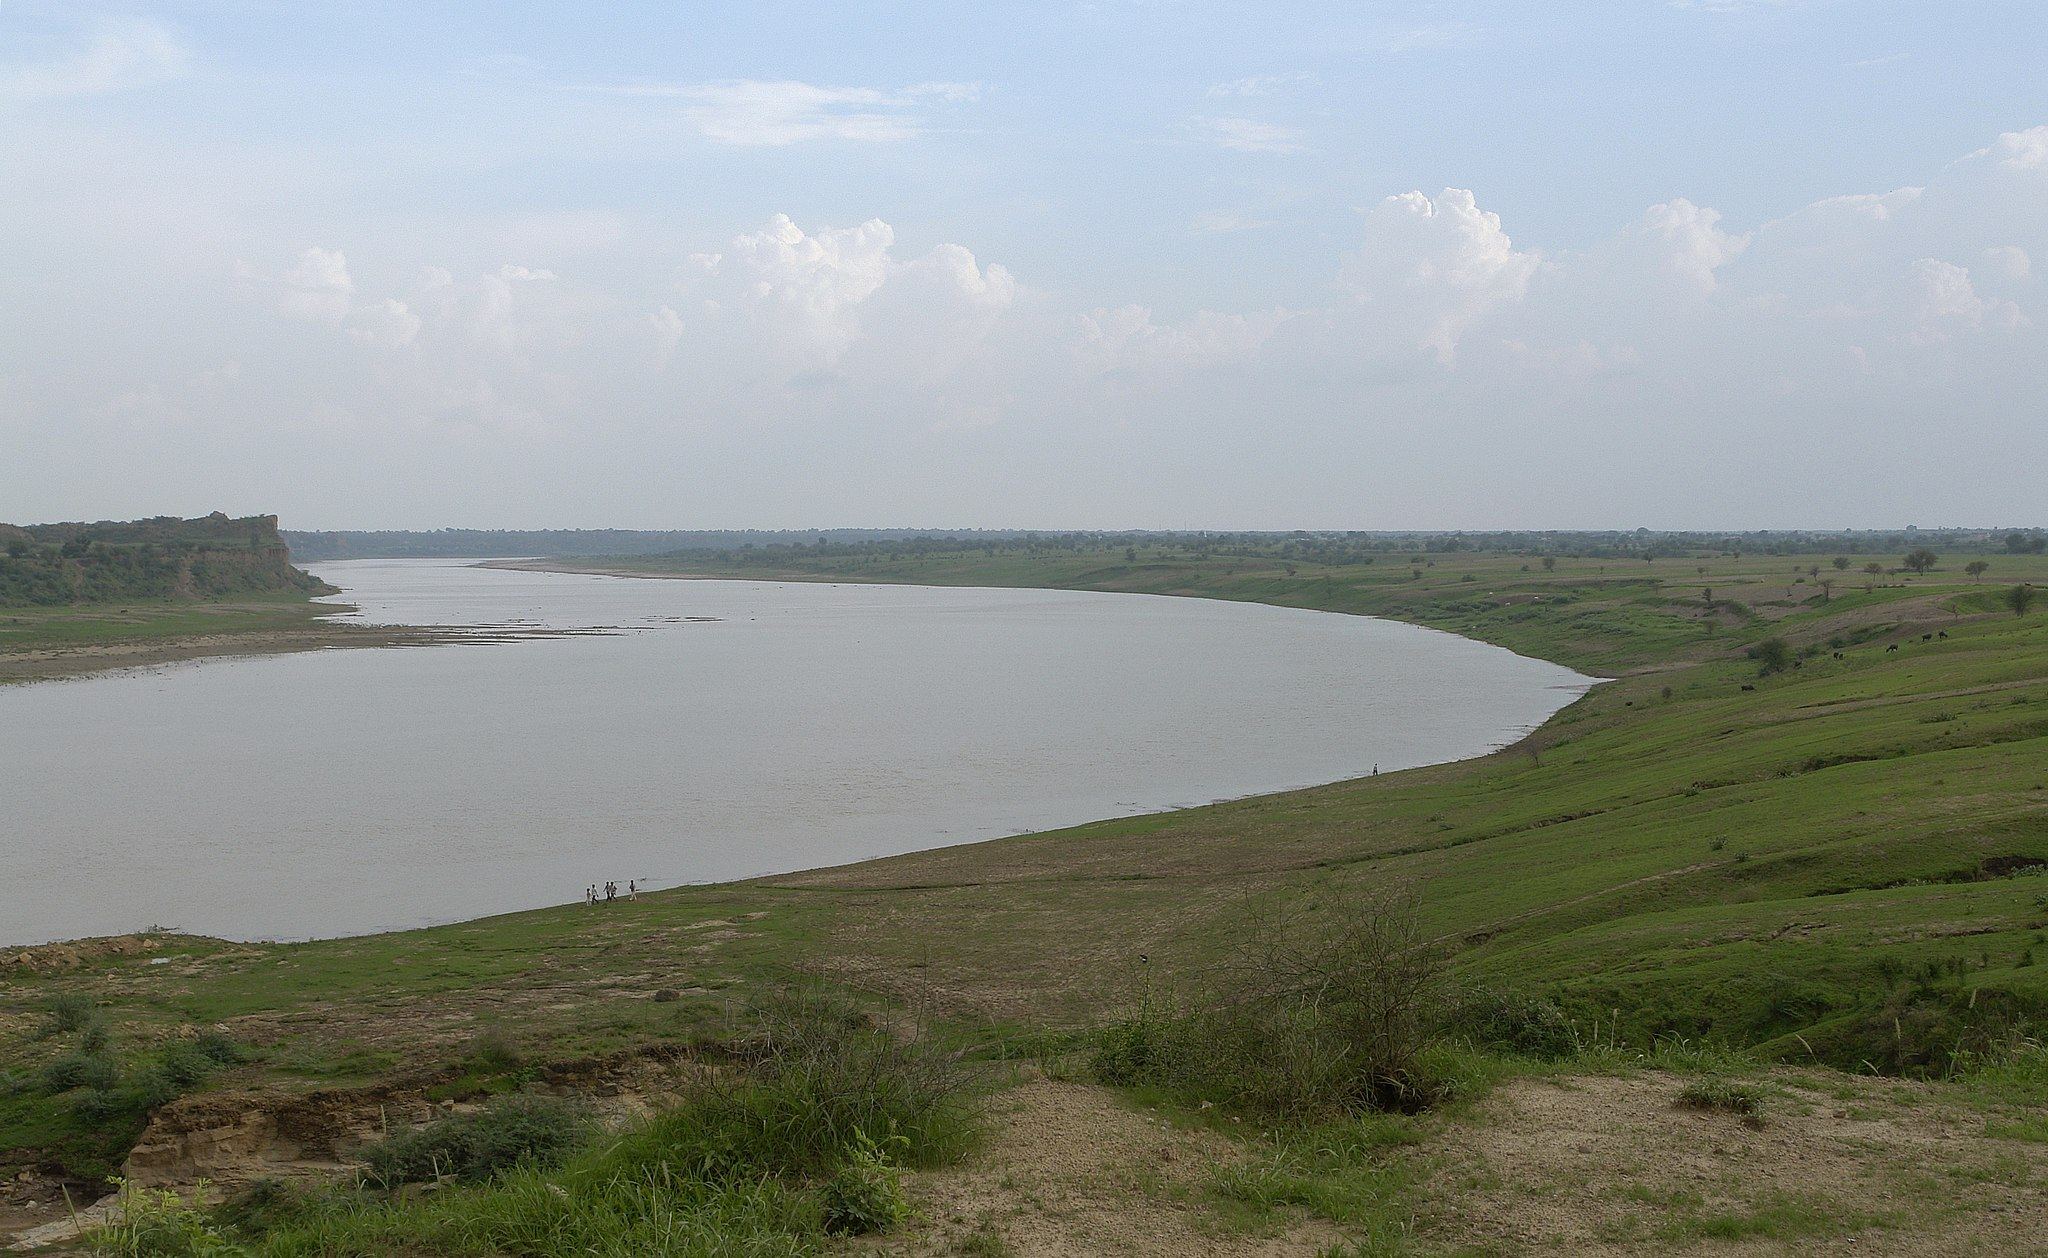 The Chambal river near Dhaulpur at the Rajasthan and Madhya Pradesh border. Photo by Yann/Wikimedia Commons.